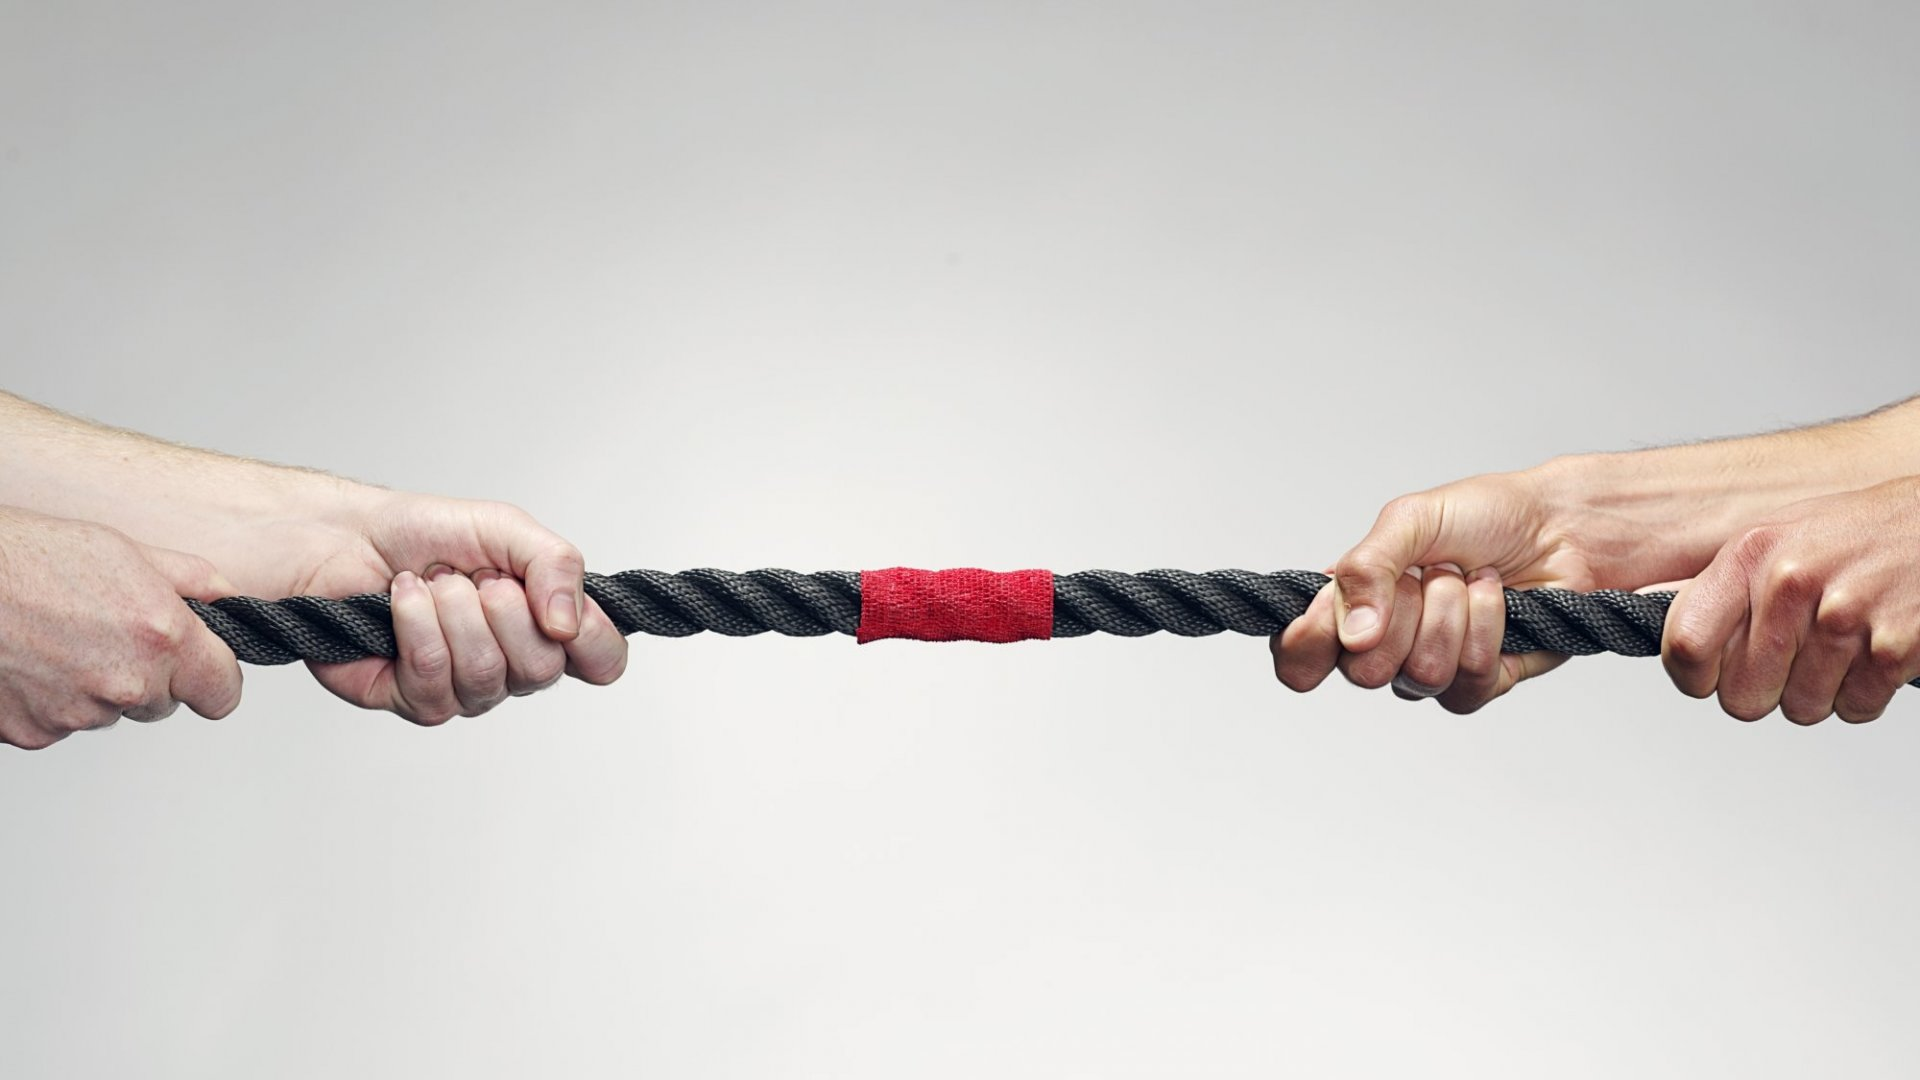 If Your Team Is Struggling to Find Good Solutions to Hard Problems, Try These 3 Steps